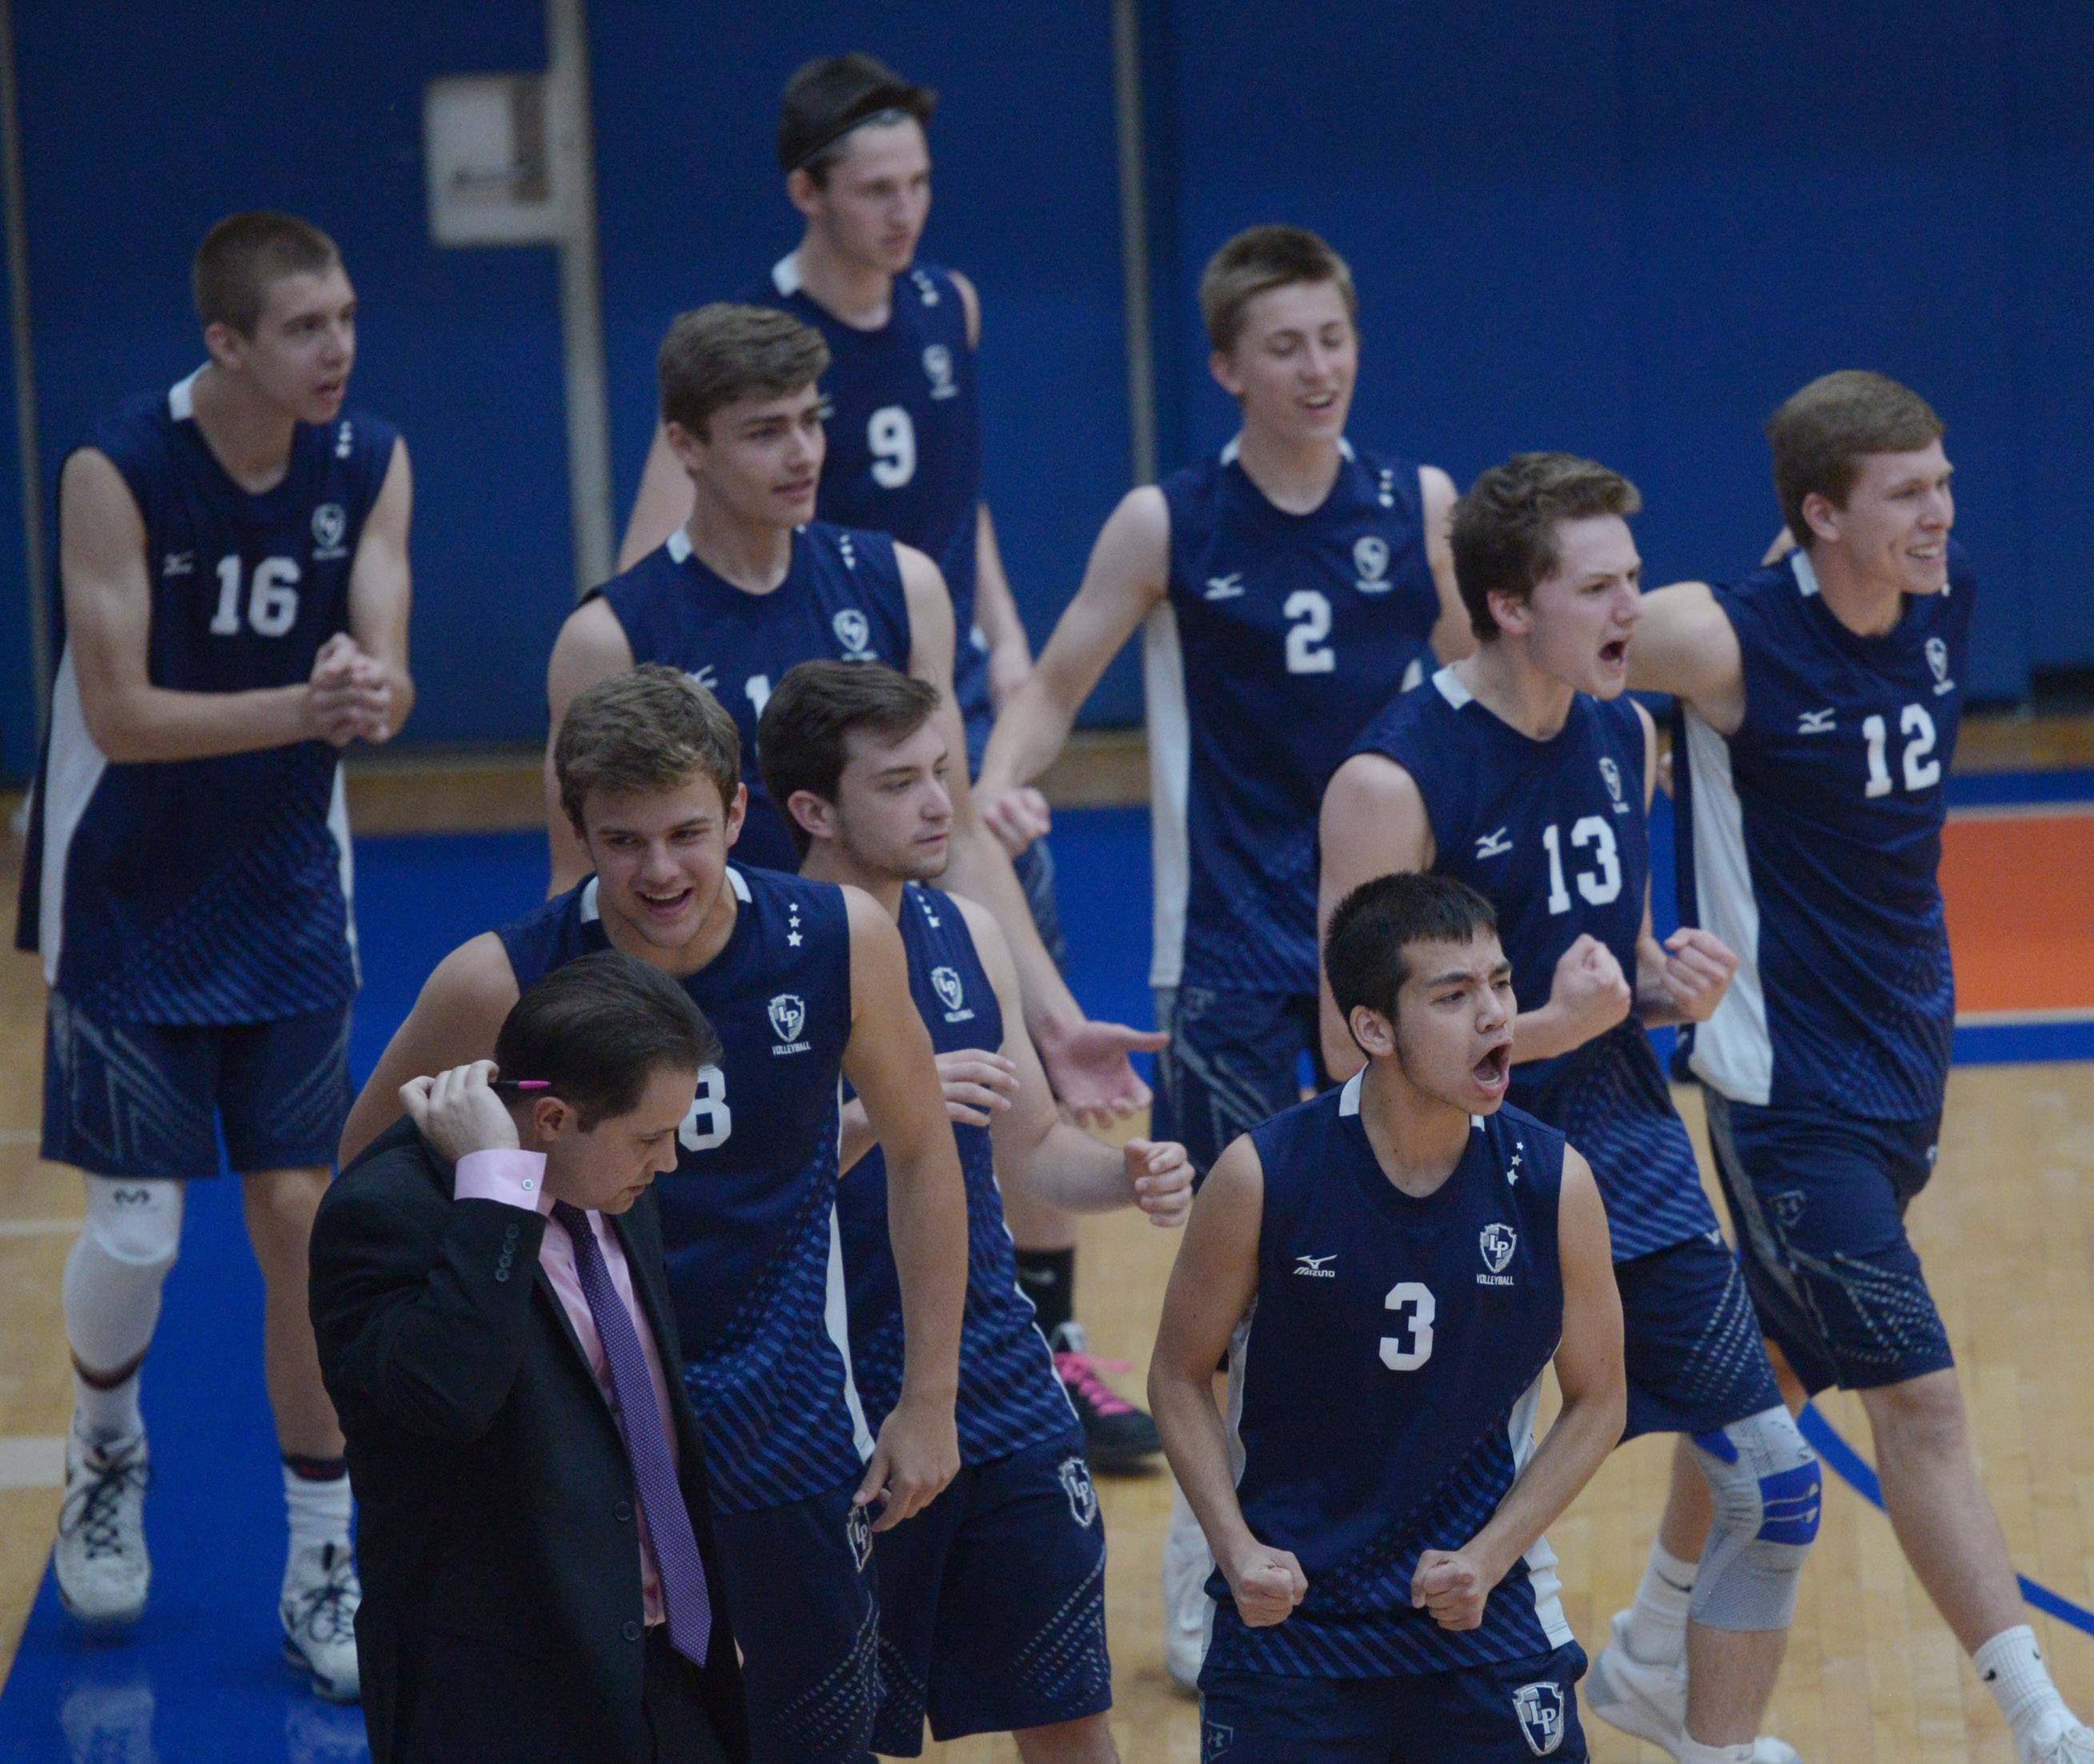 Lake Park substitutes celebrate a point by their team during the boys volleyball state quarterfinals at Hoffman Estates High School Friday.